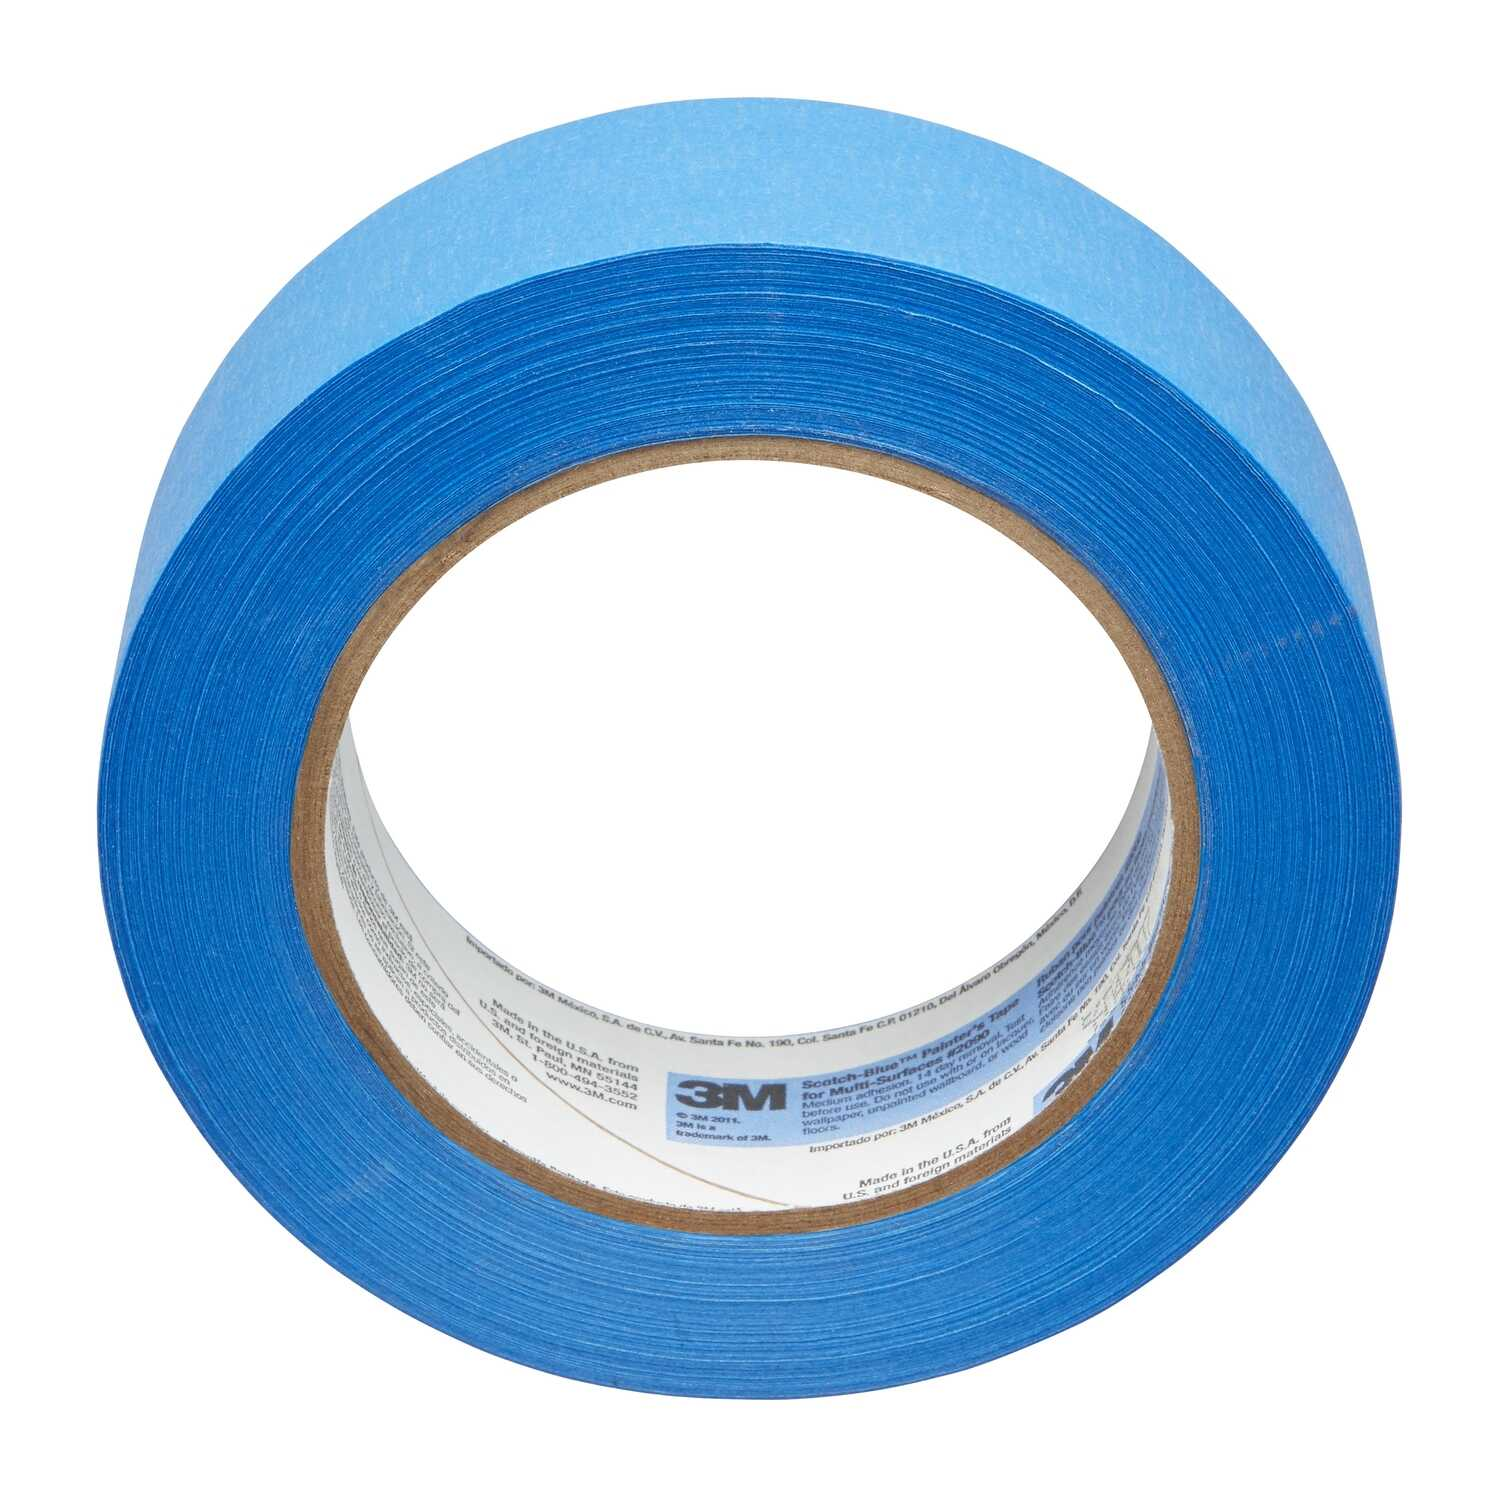 3M  Scotch Blue  2.83 in. W x 60 yd. L Blue  Medium Strength  Painter's Tape  1 pk